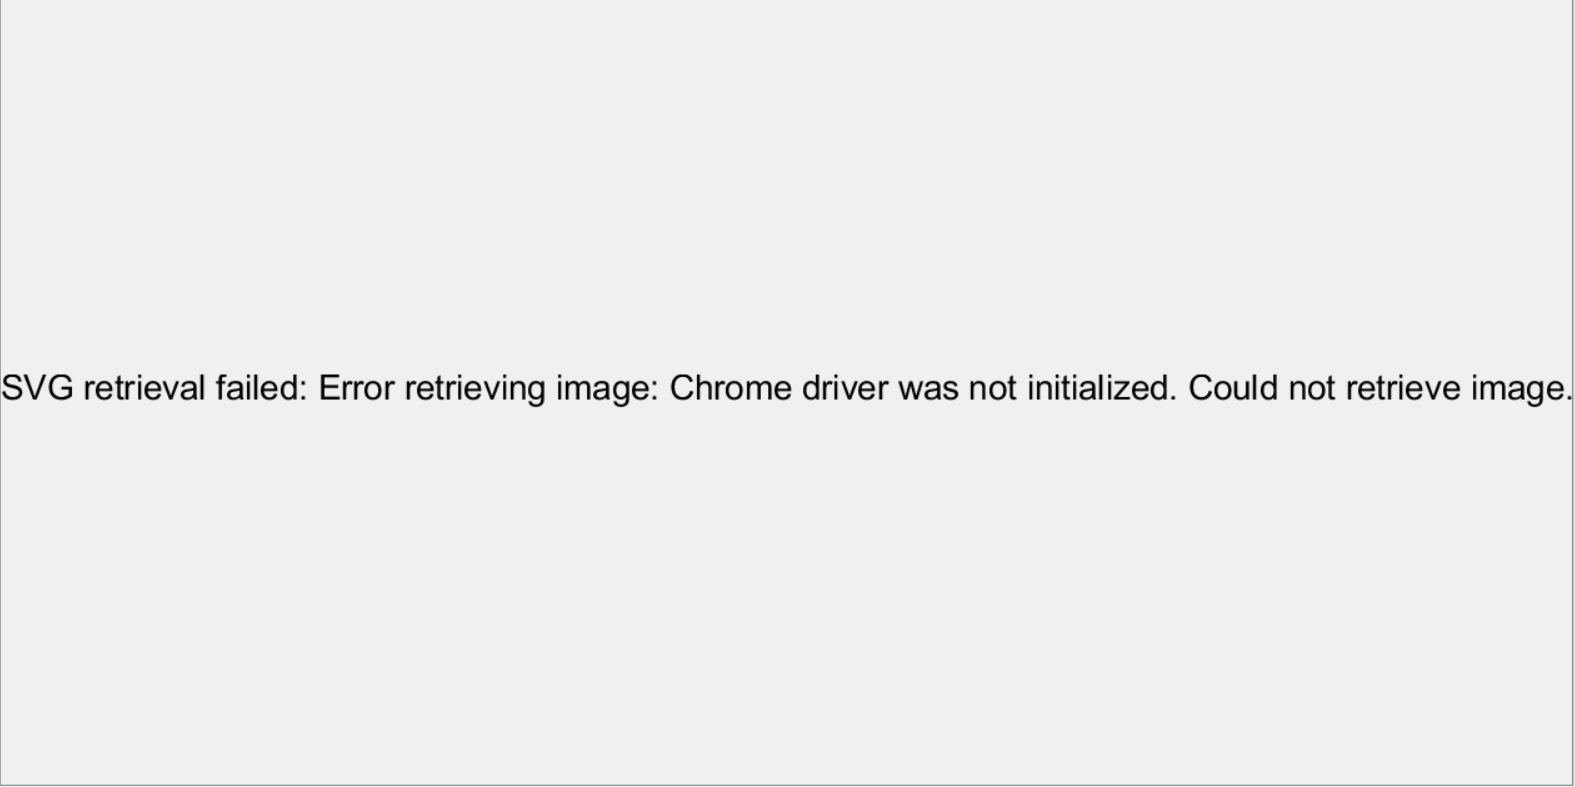 ScatterPlot View - Chrome driver was not initialized report